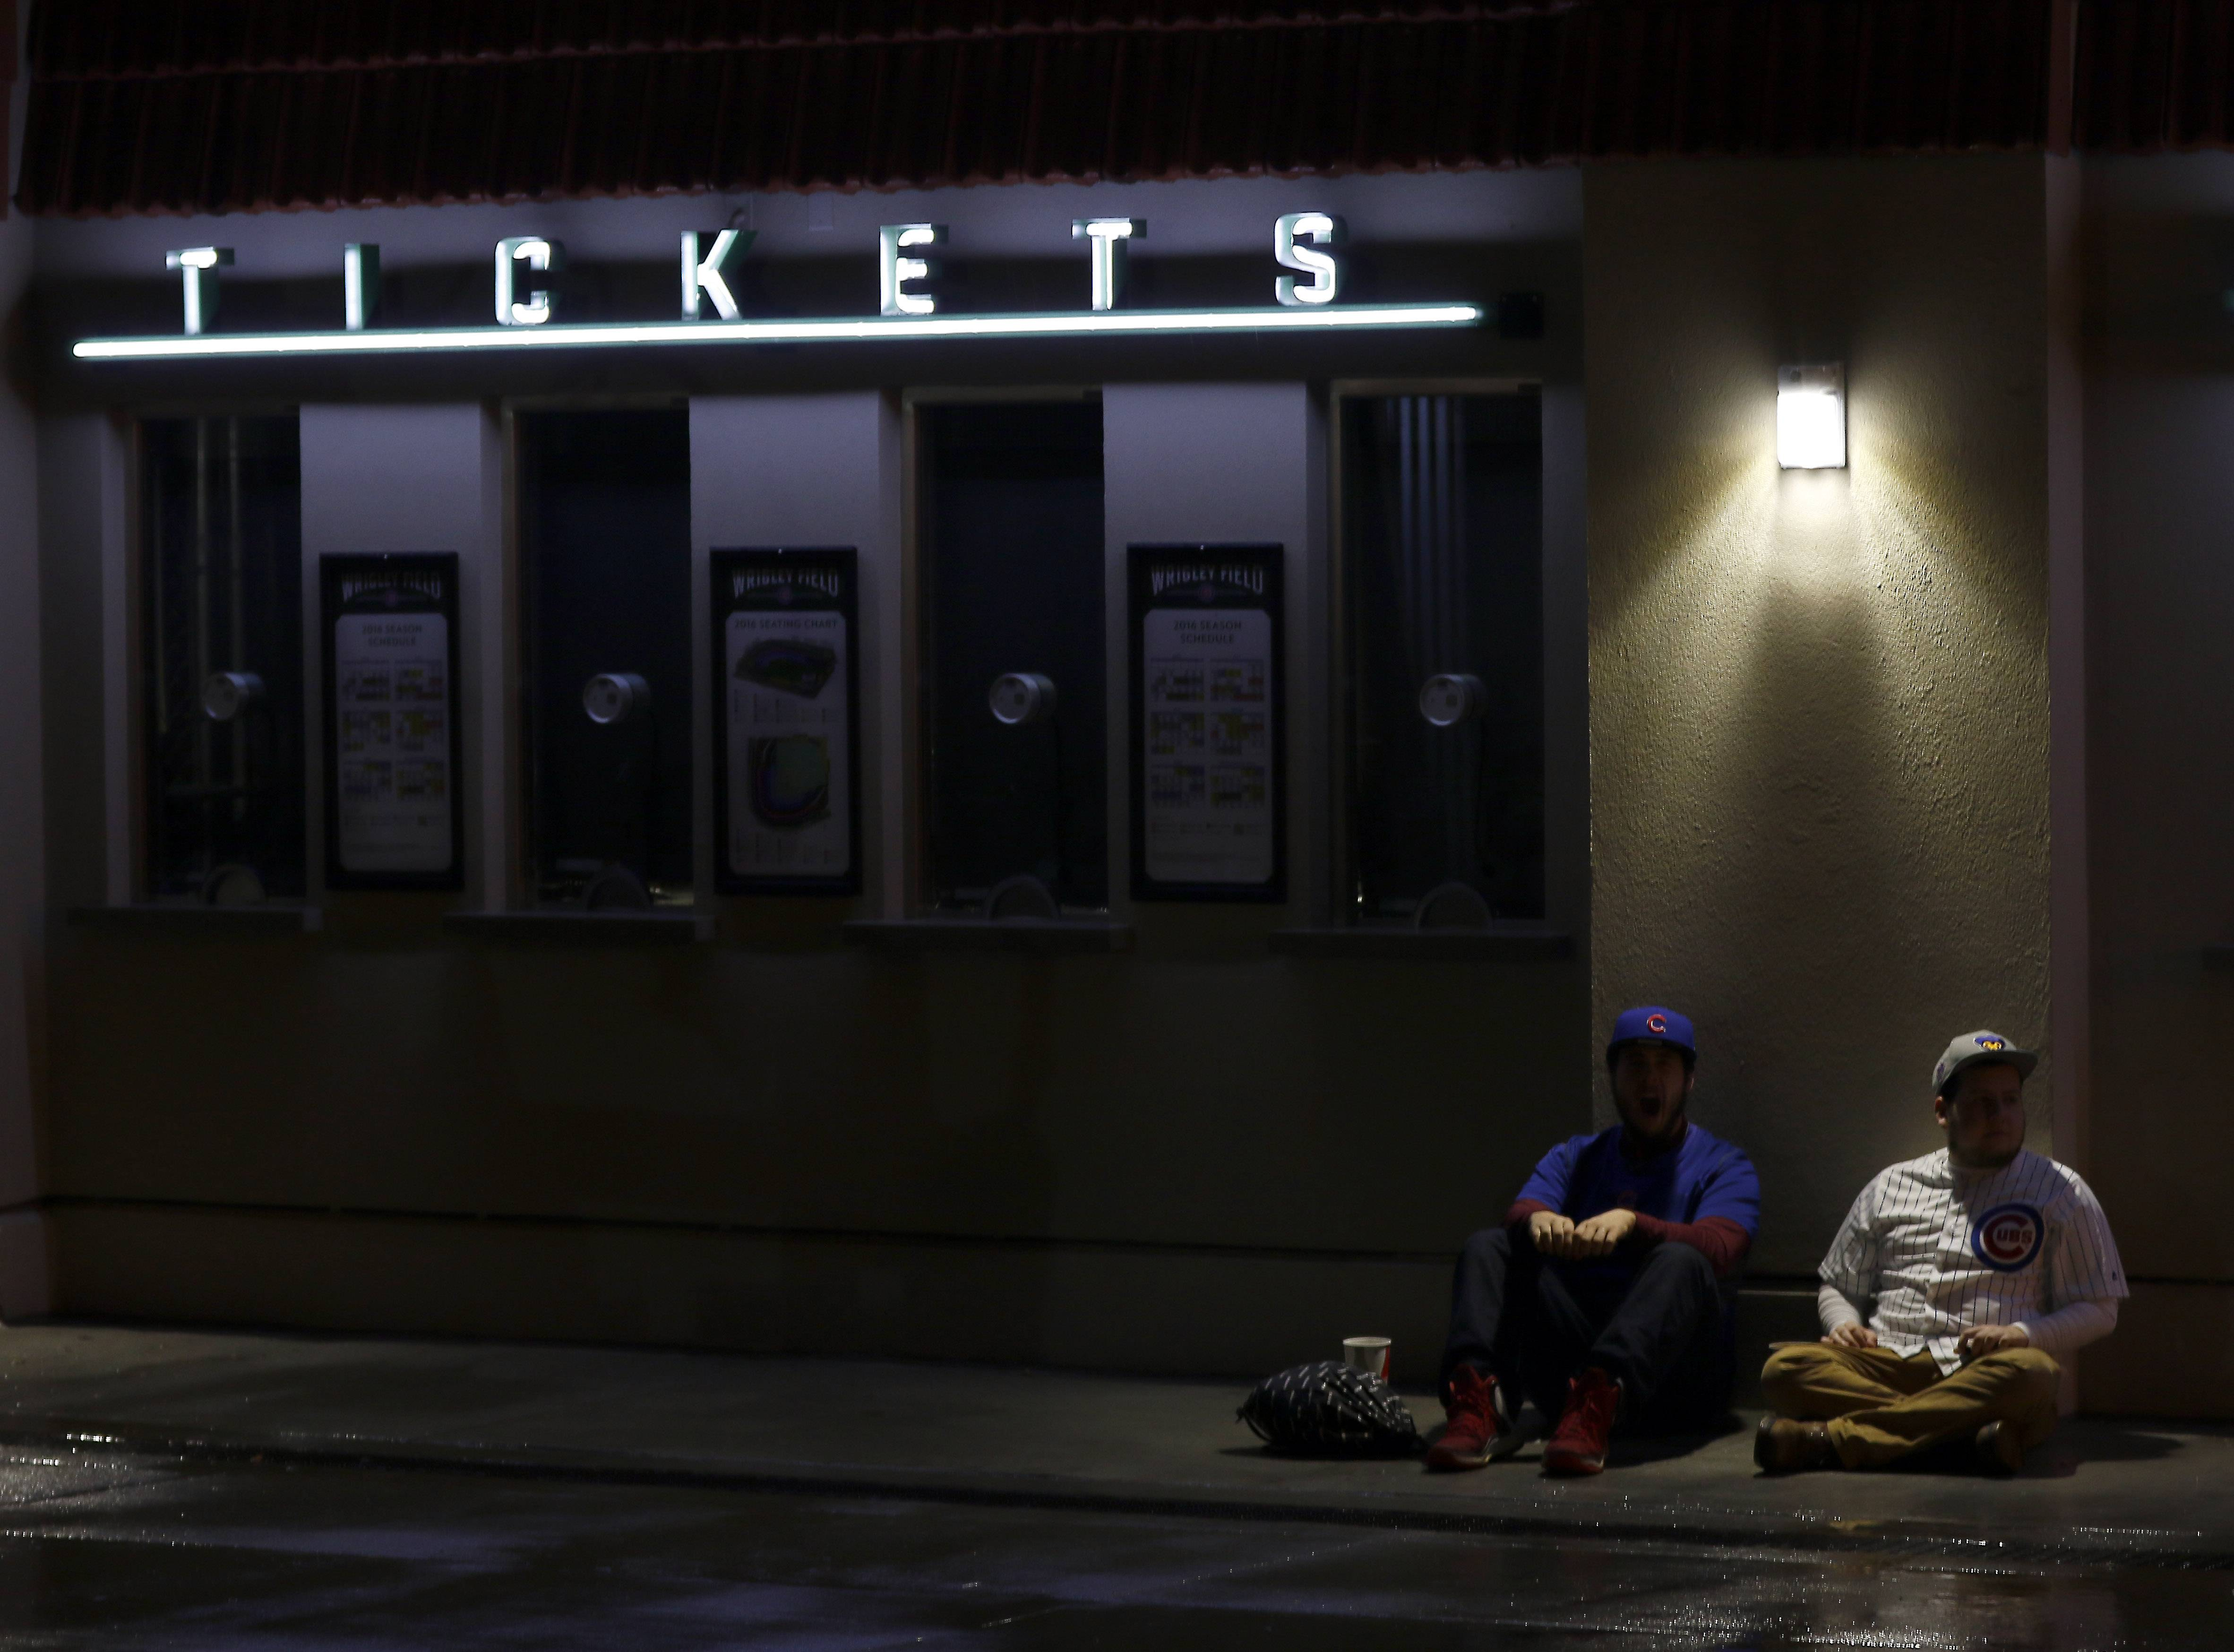 Cubs season ticket holders, brace for 6% to 31% price hike